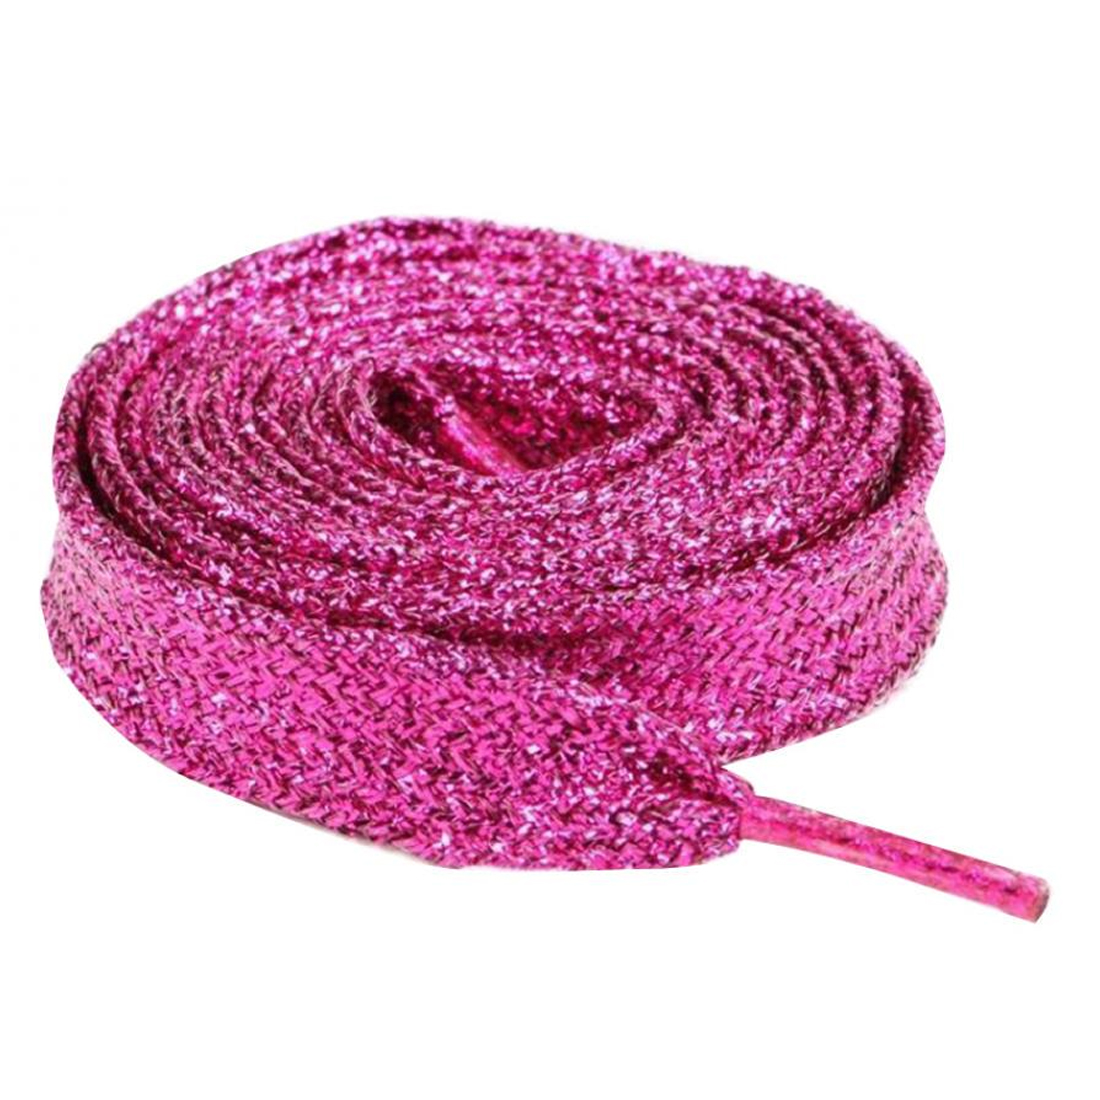 Pearlized Colors 1Pair 120cm Pearlized Colors Double Flat Metallic Glitter Shoelace Canvas Sneaker Shoe Laces 8 Colors